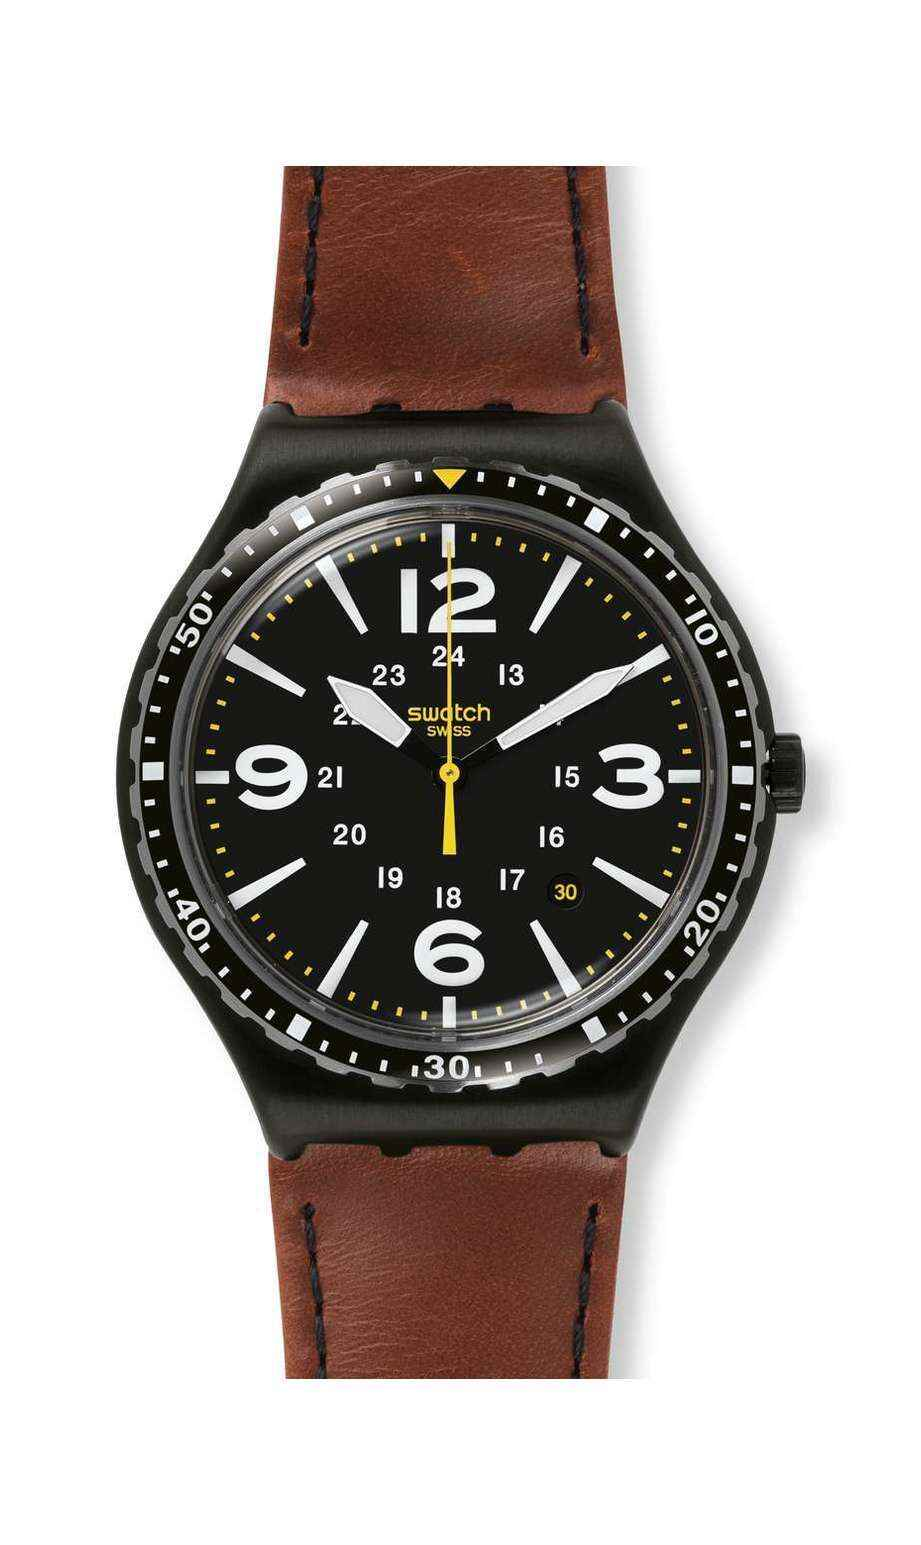 Swatch - SPECIAL UNIT - 1